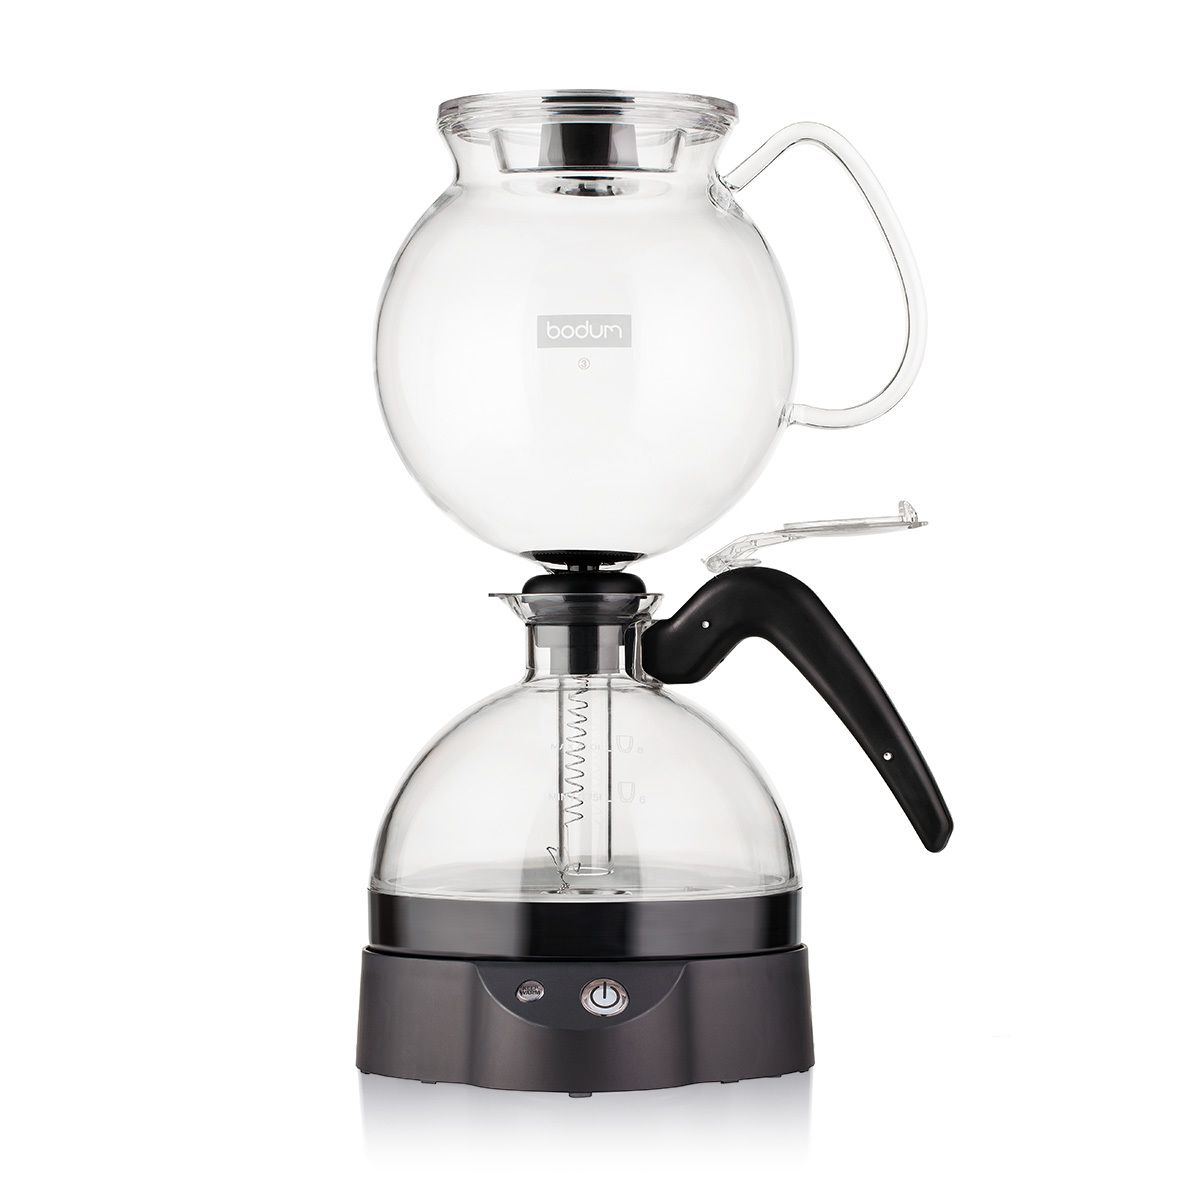 Siphon Coffee Maker ePEBO Bodum